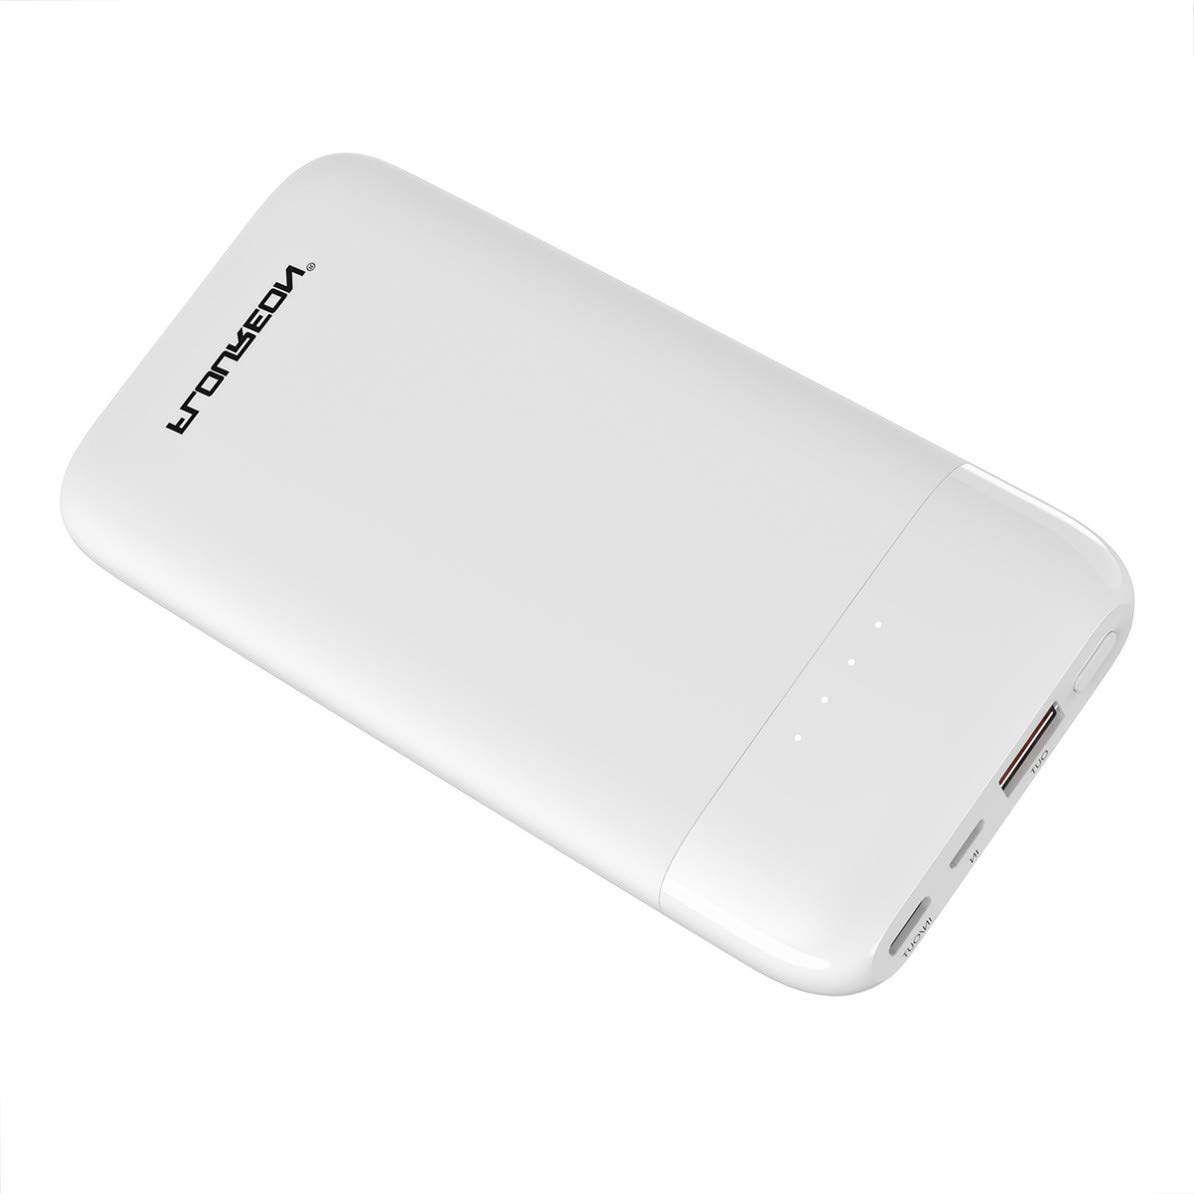 Brilliant power bank, compact and affordable